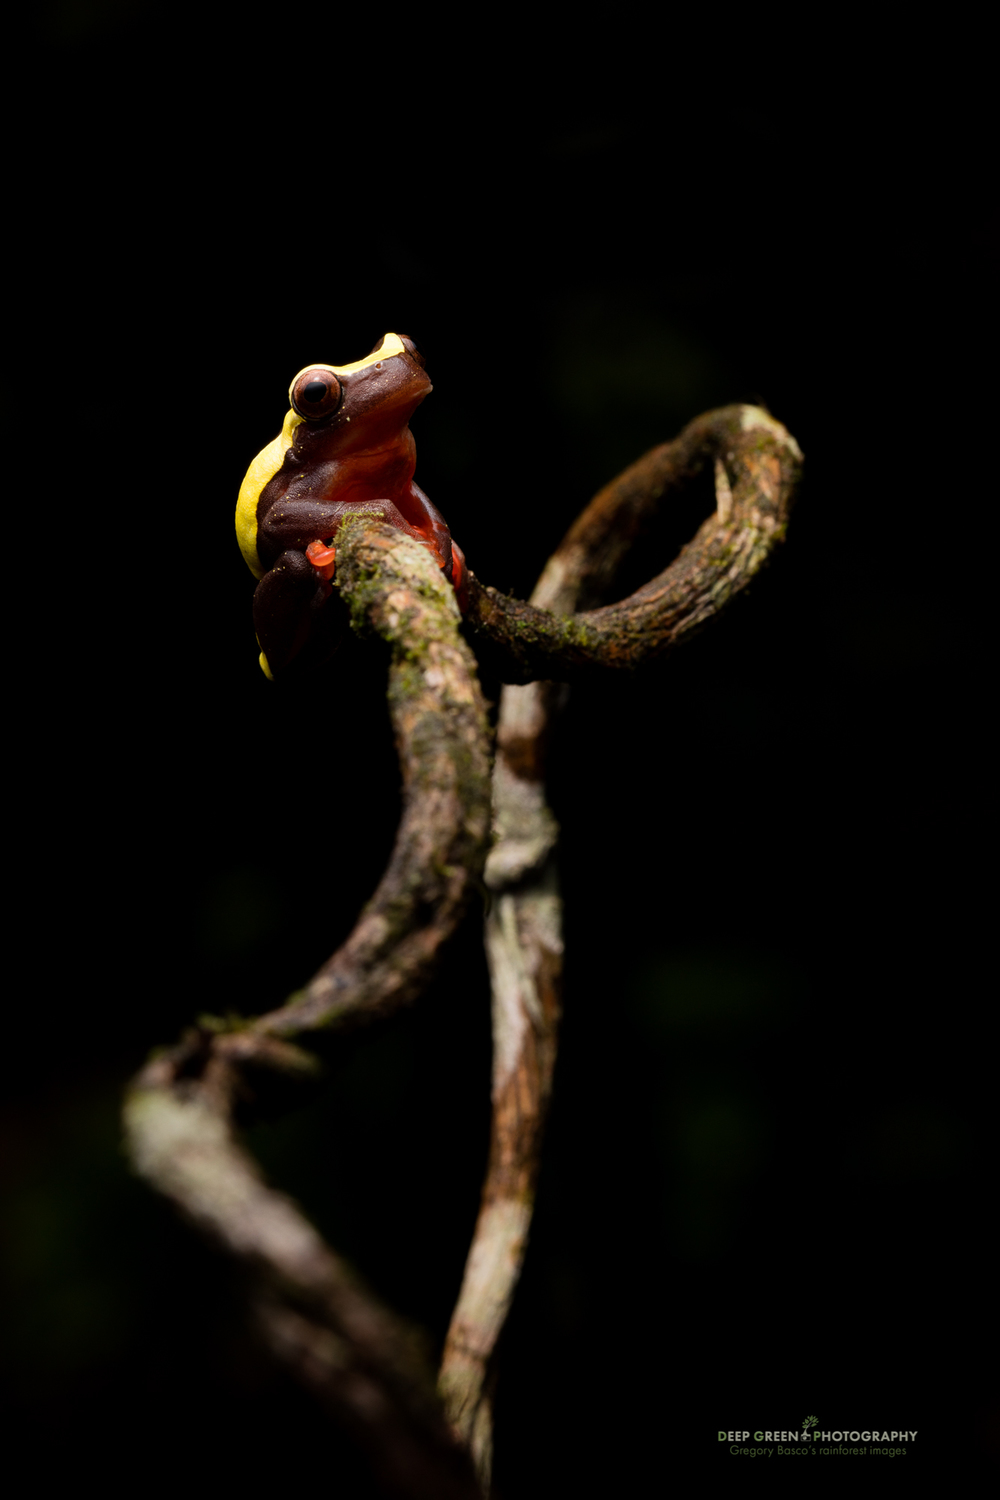 A clown frog on a branch in the rainforest in Ecuador